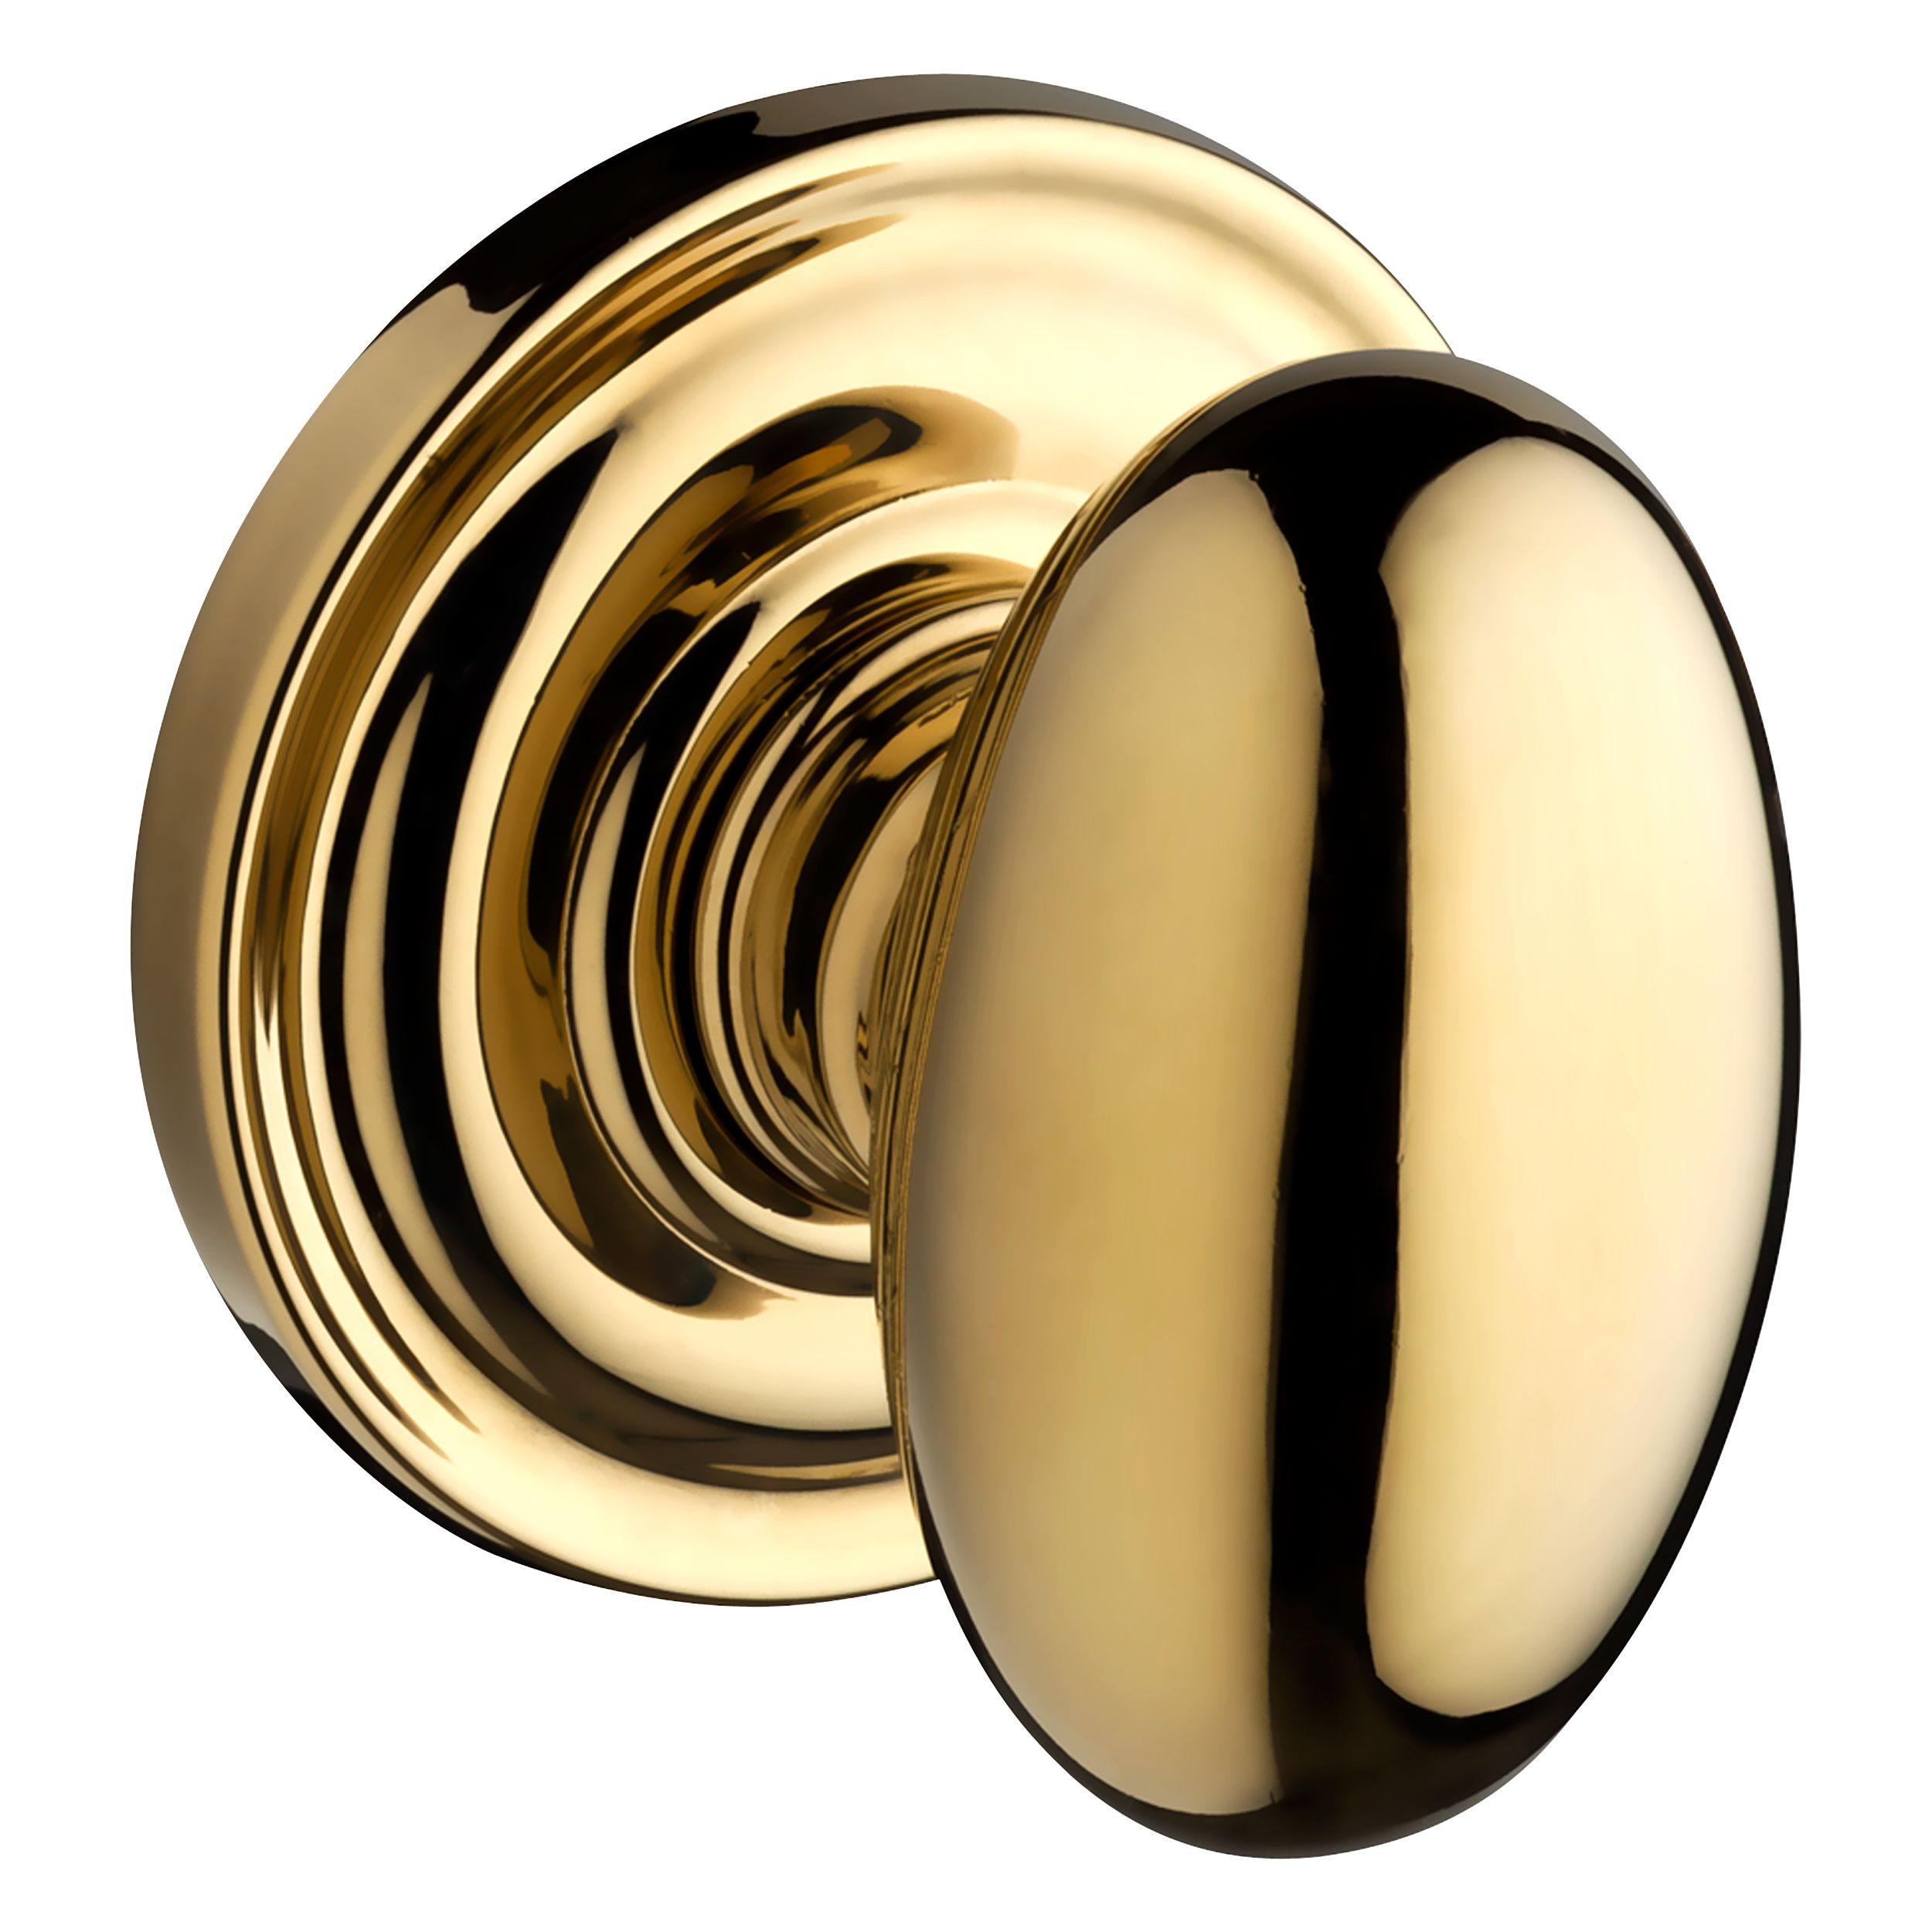 110ELLTRR003 Ellipse knob round rose shown in polished brass. Available in all functions, with other finish and rosette options.